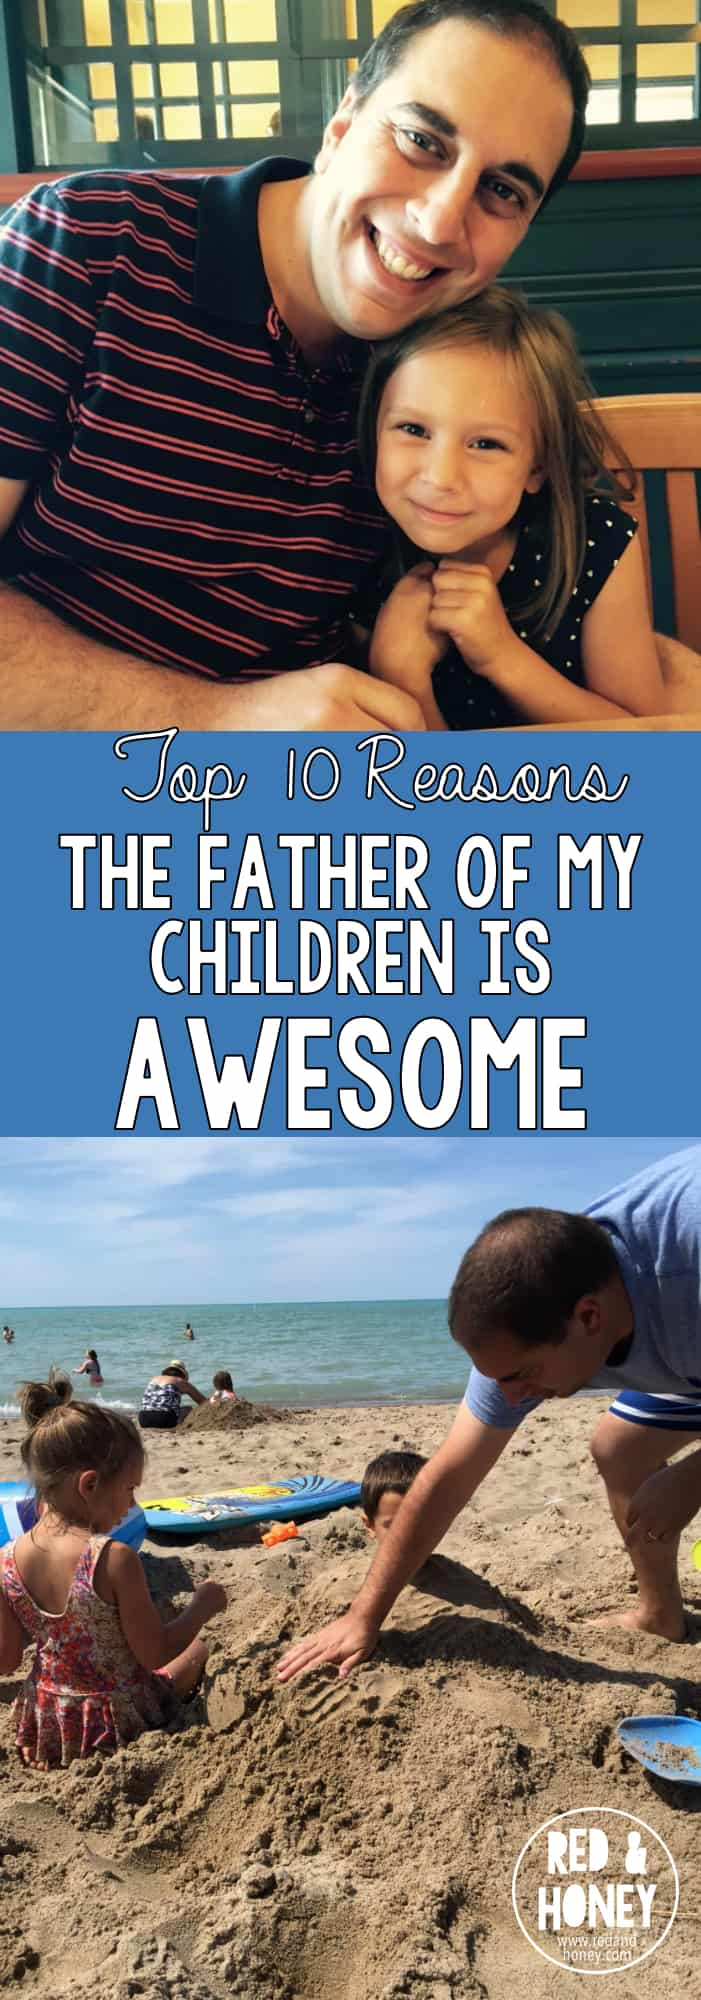 Top 10 Reasons the Father of My Children is Awesome - R&H pin